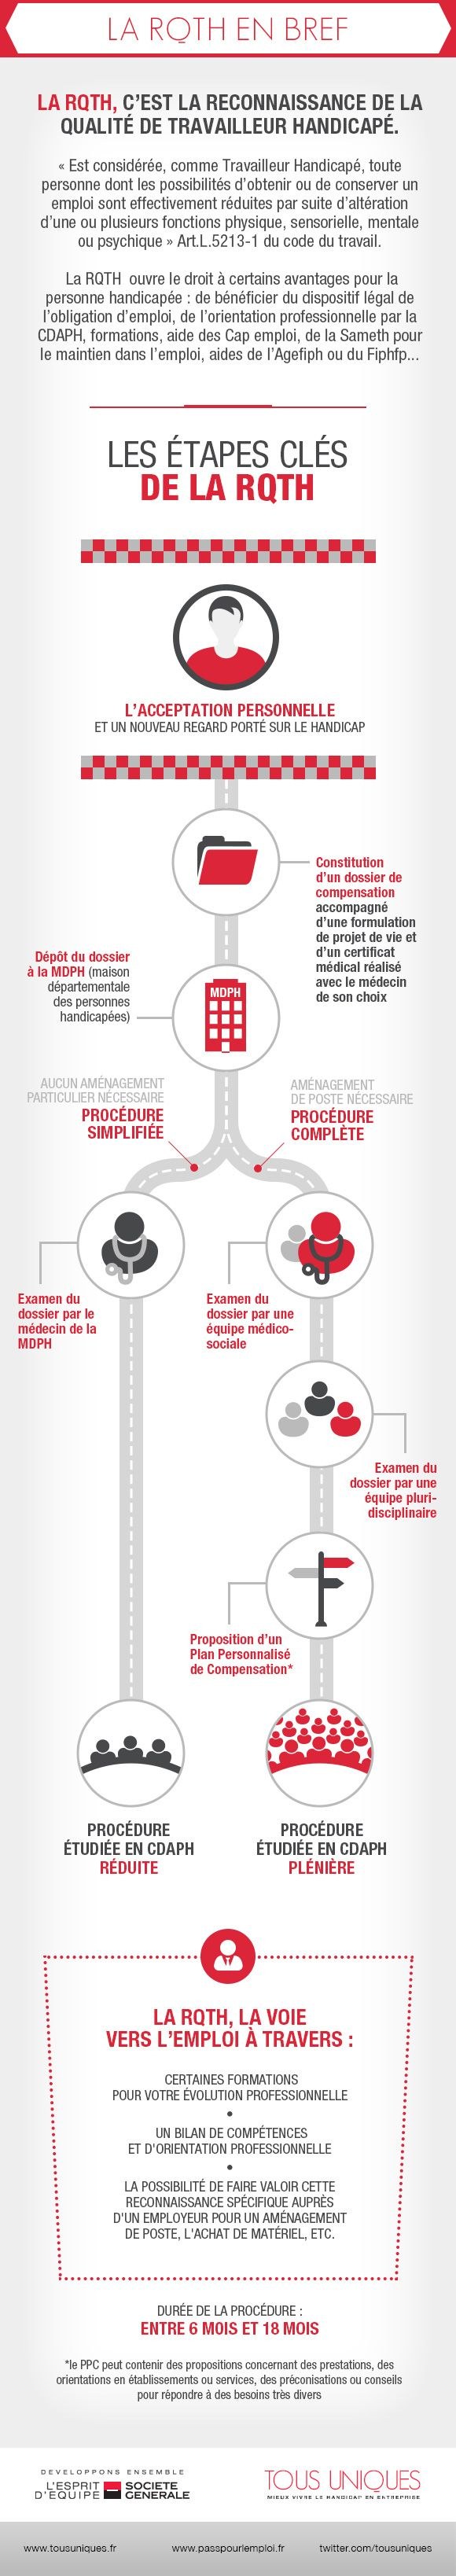 RQTH #infographie